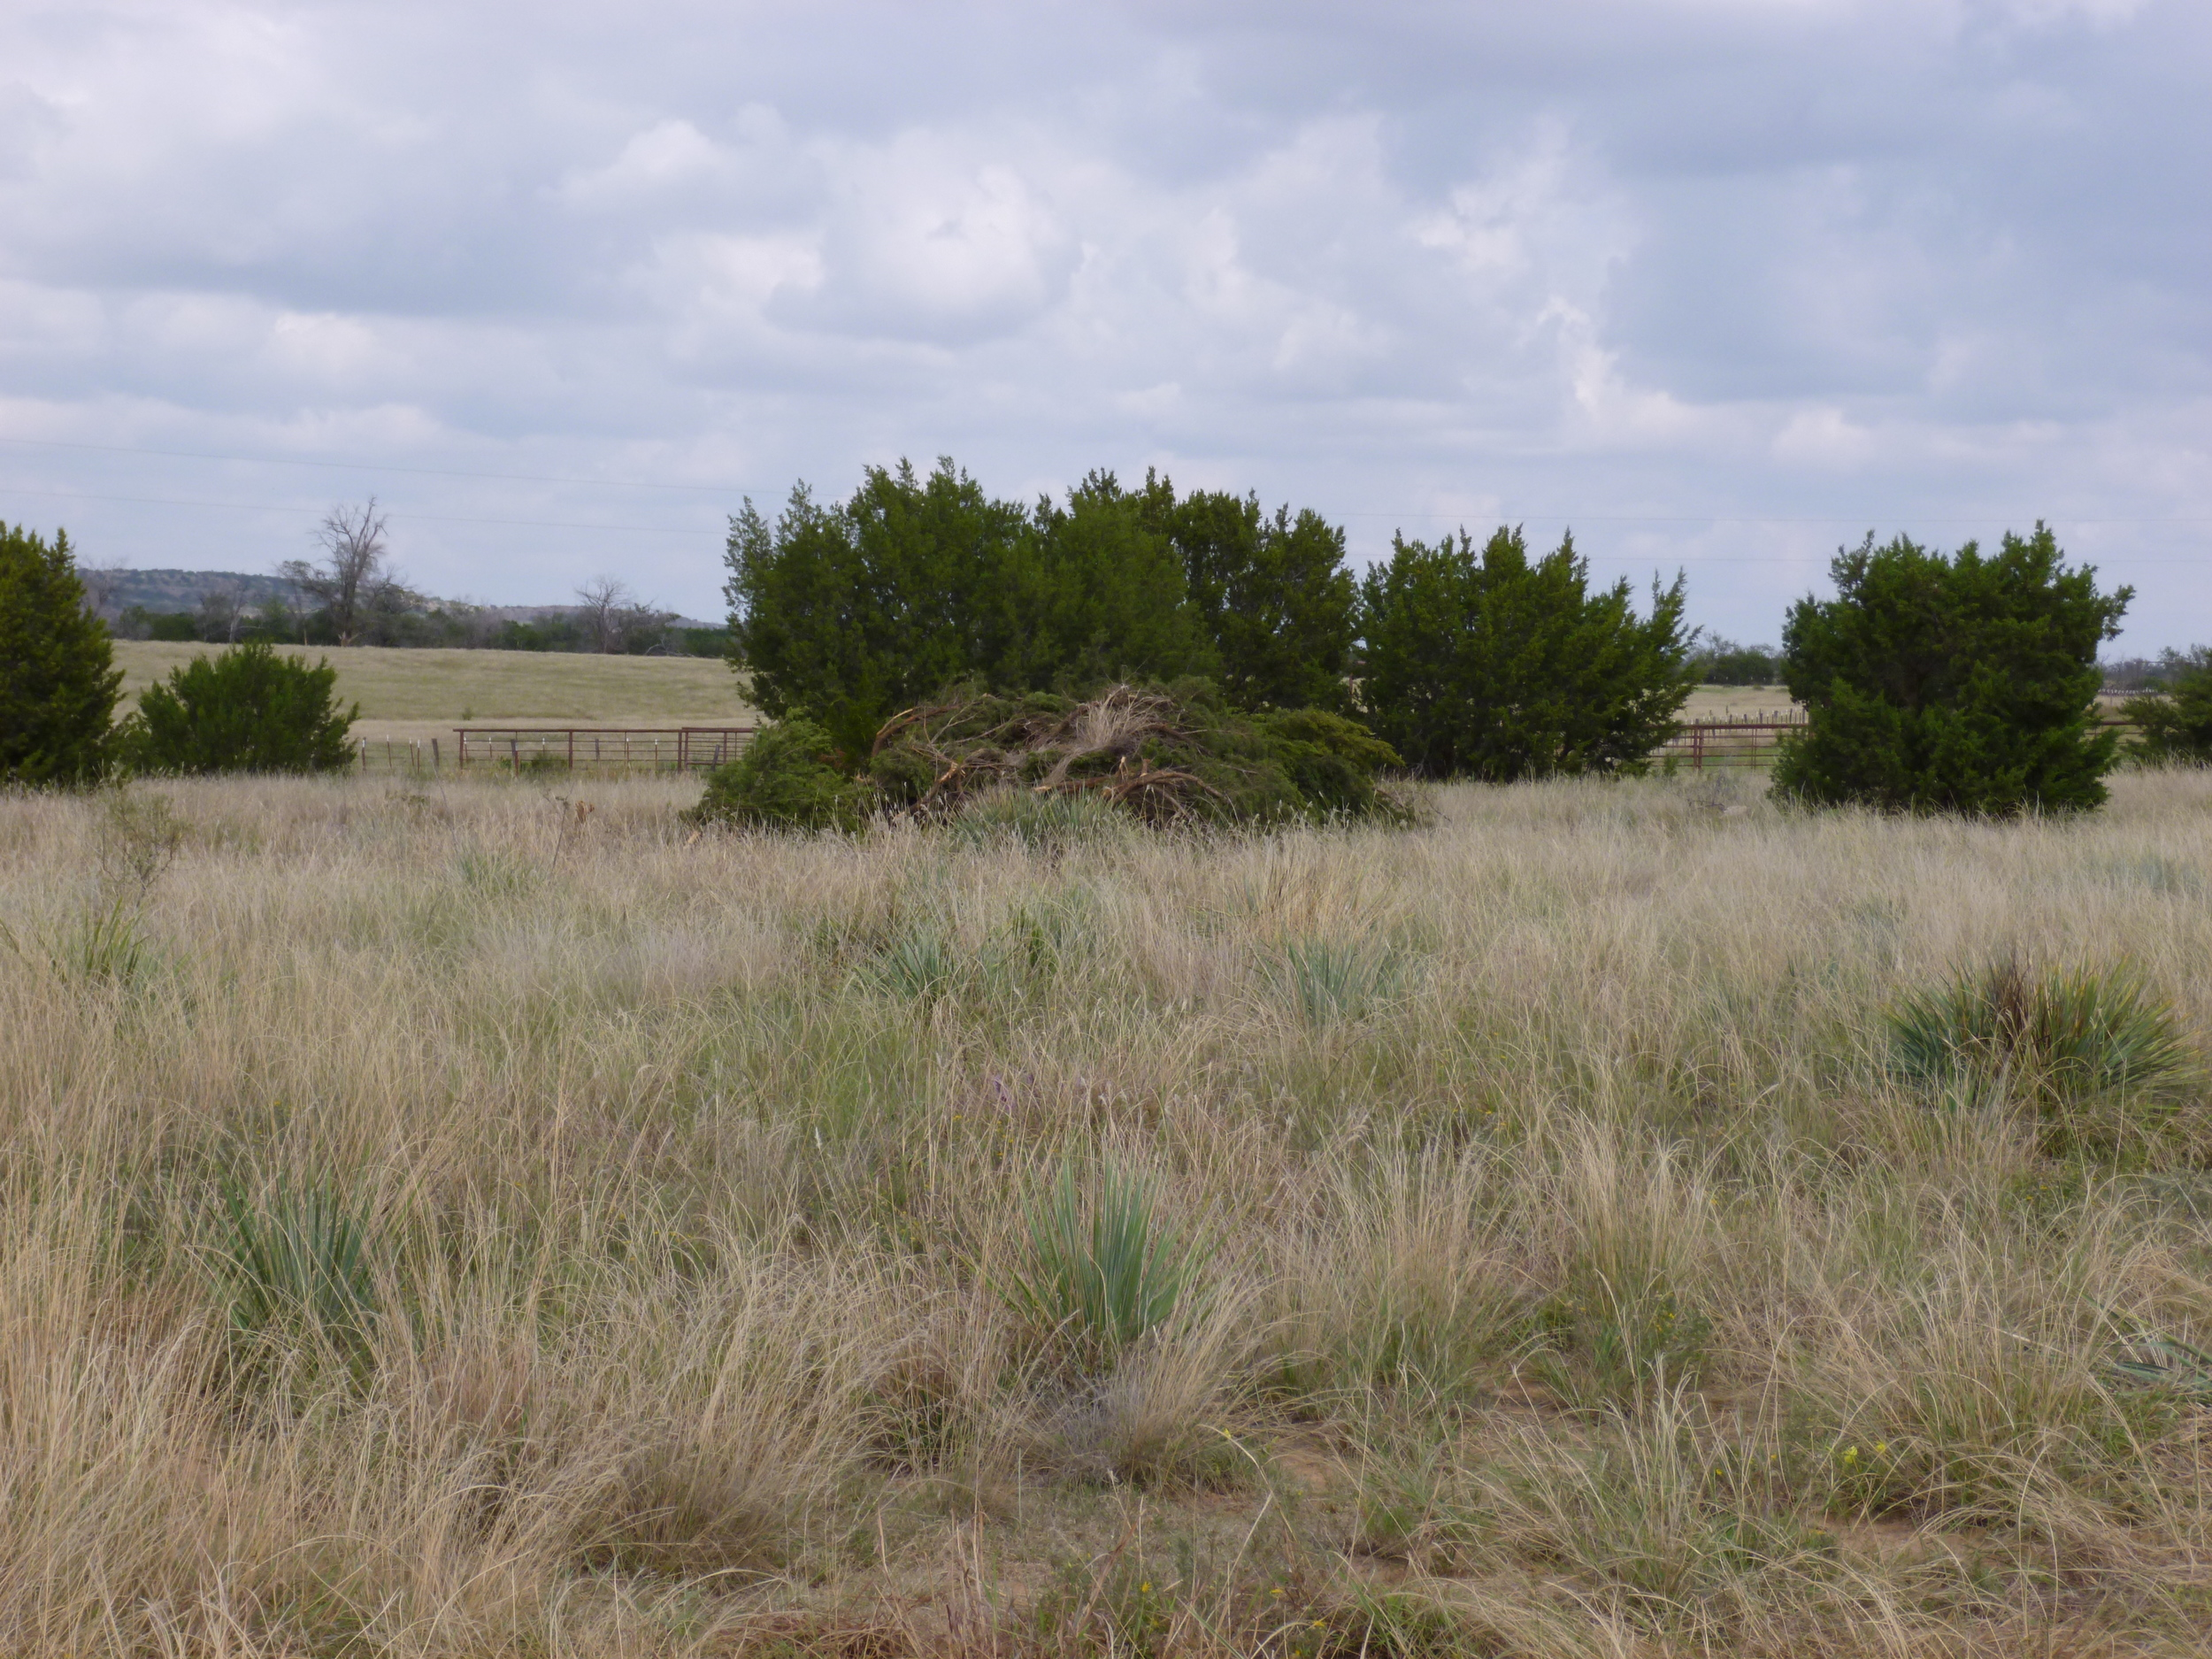 Controlling eastern red cedar is an important tool in helping to improve quail habitat